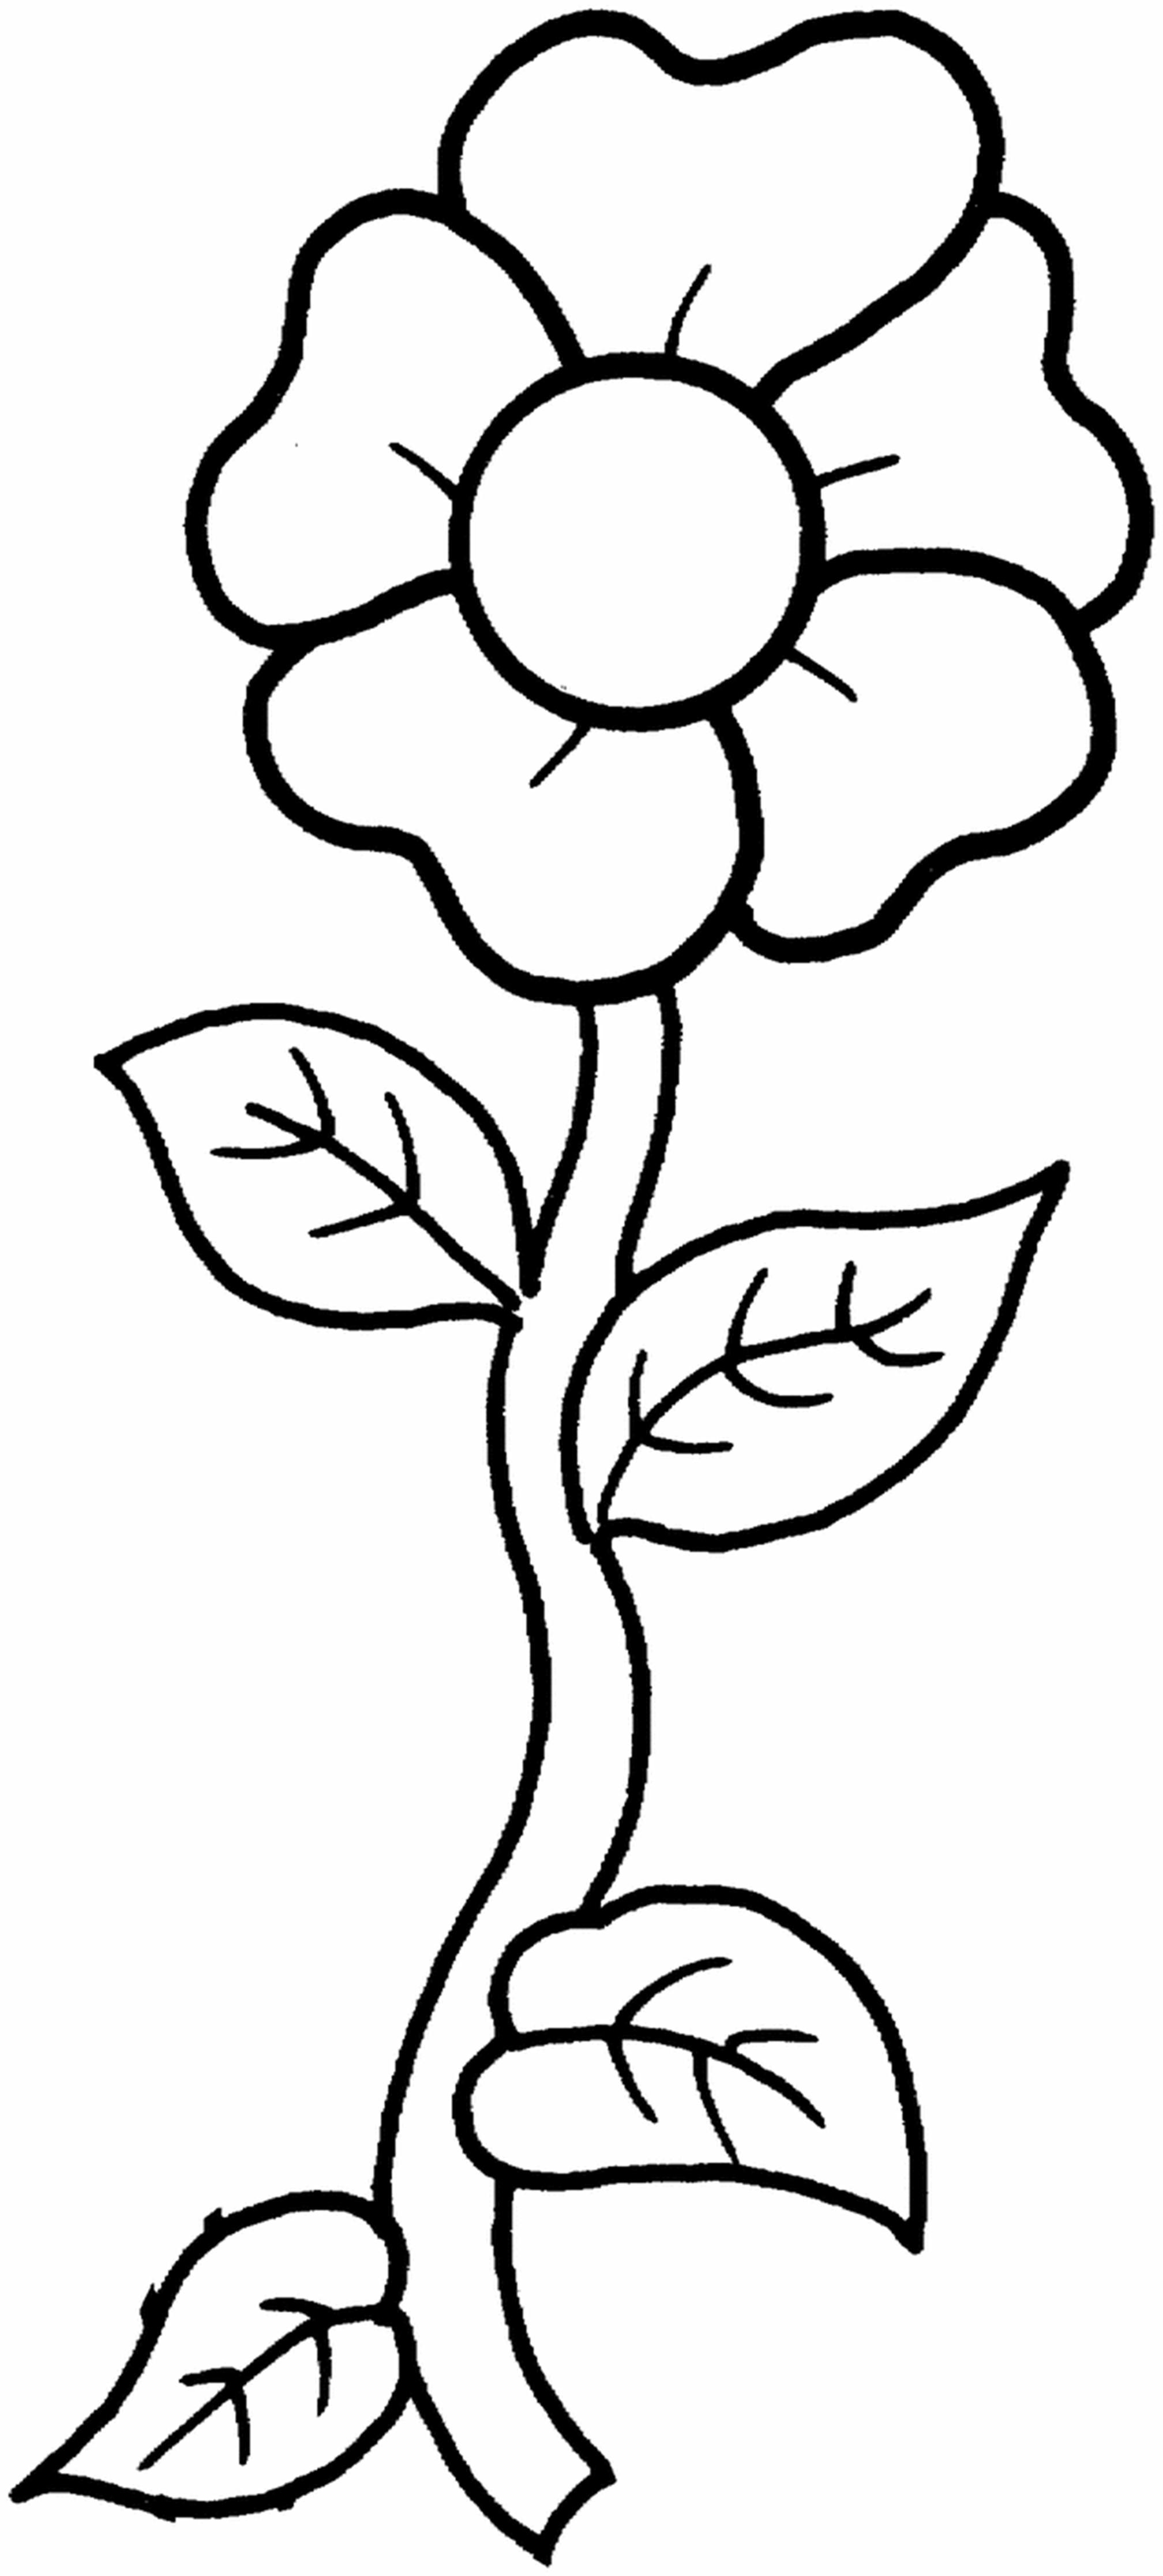 Best ideas about Free Coloring Sheets Printable . Save or Pin Free Printable Flower Coloring Pages For Kids Best Now.